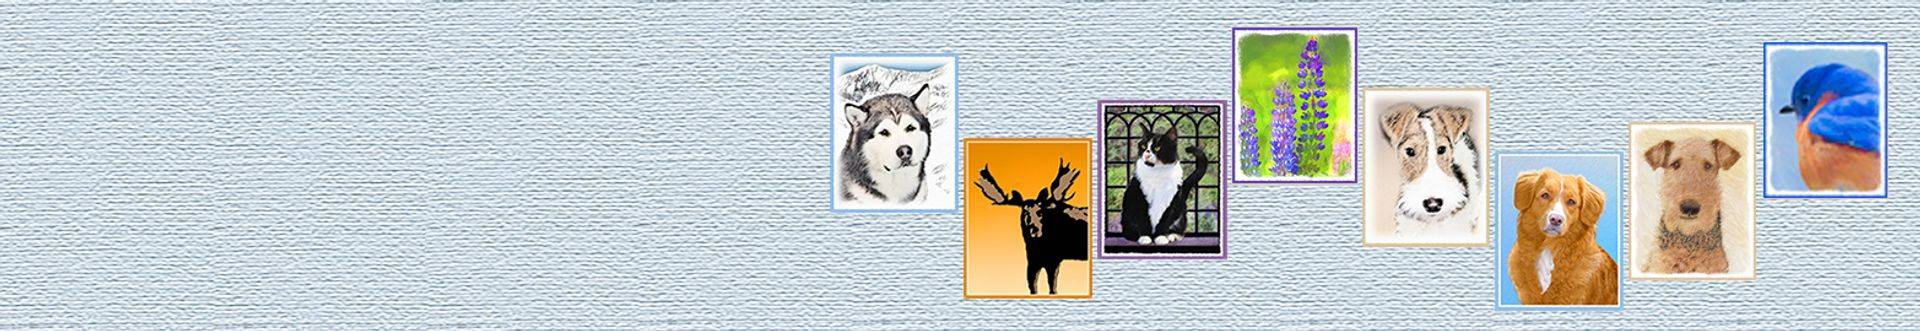 original art for dog breeds, cats, bear, wolf, eagle, elk, caribou, moose